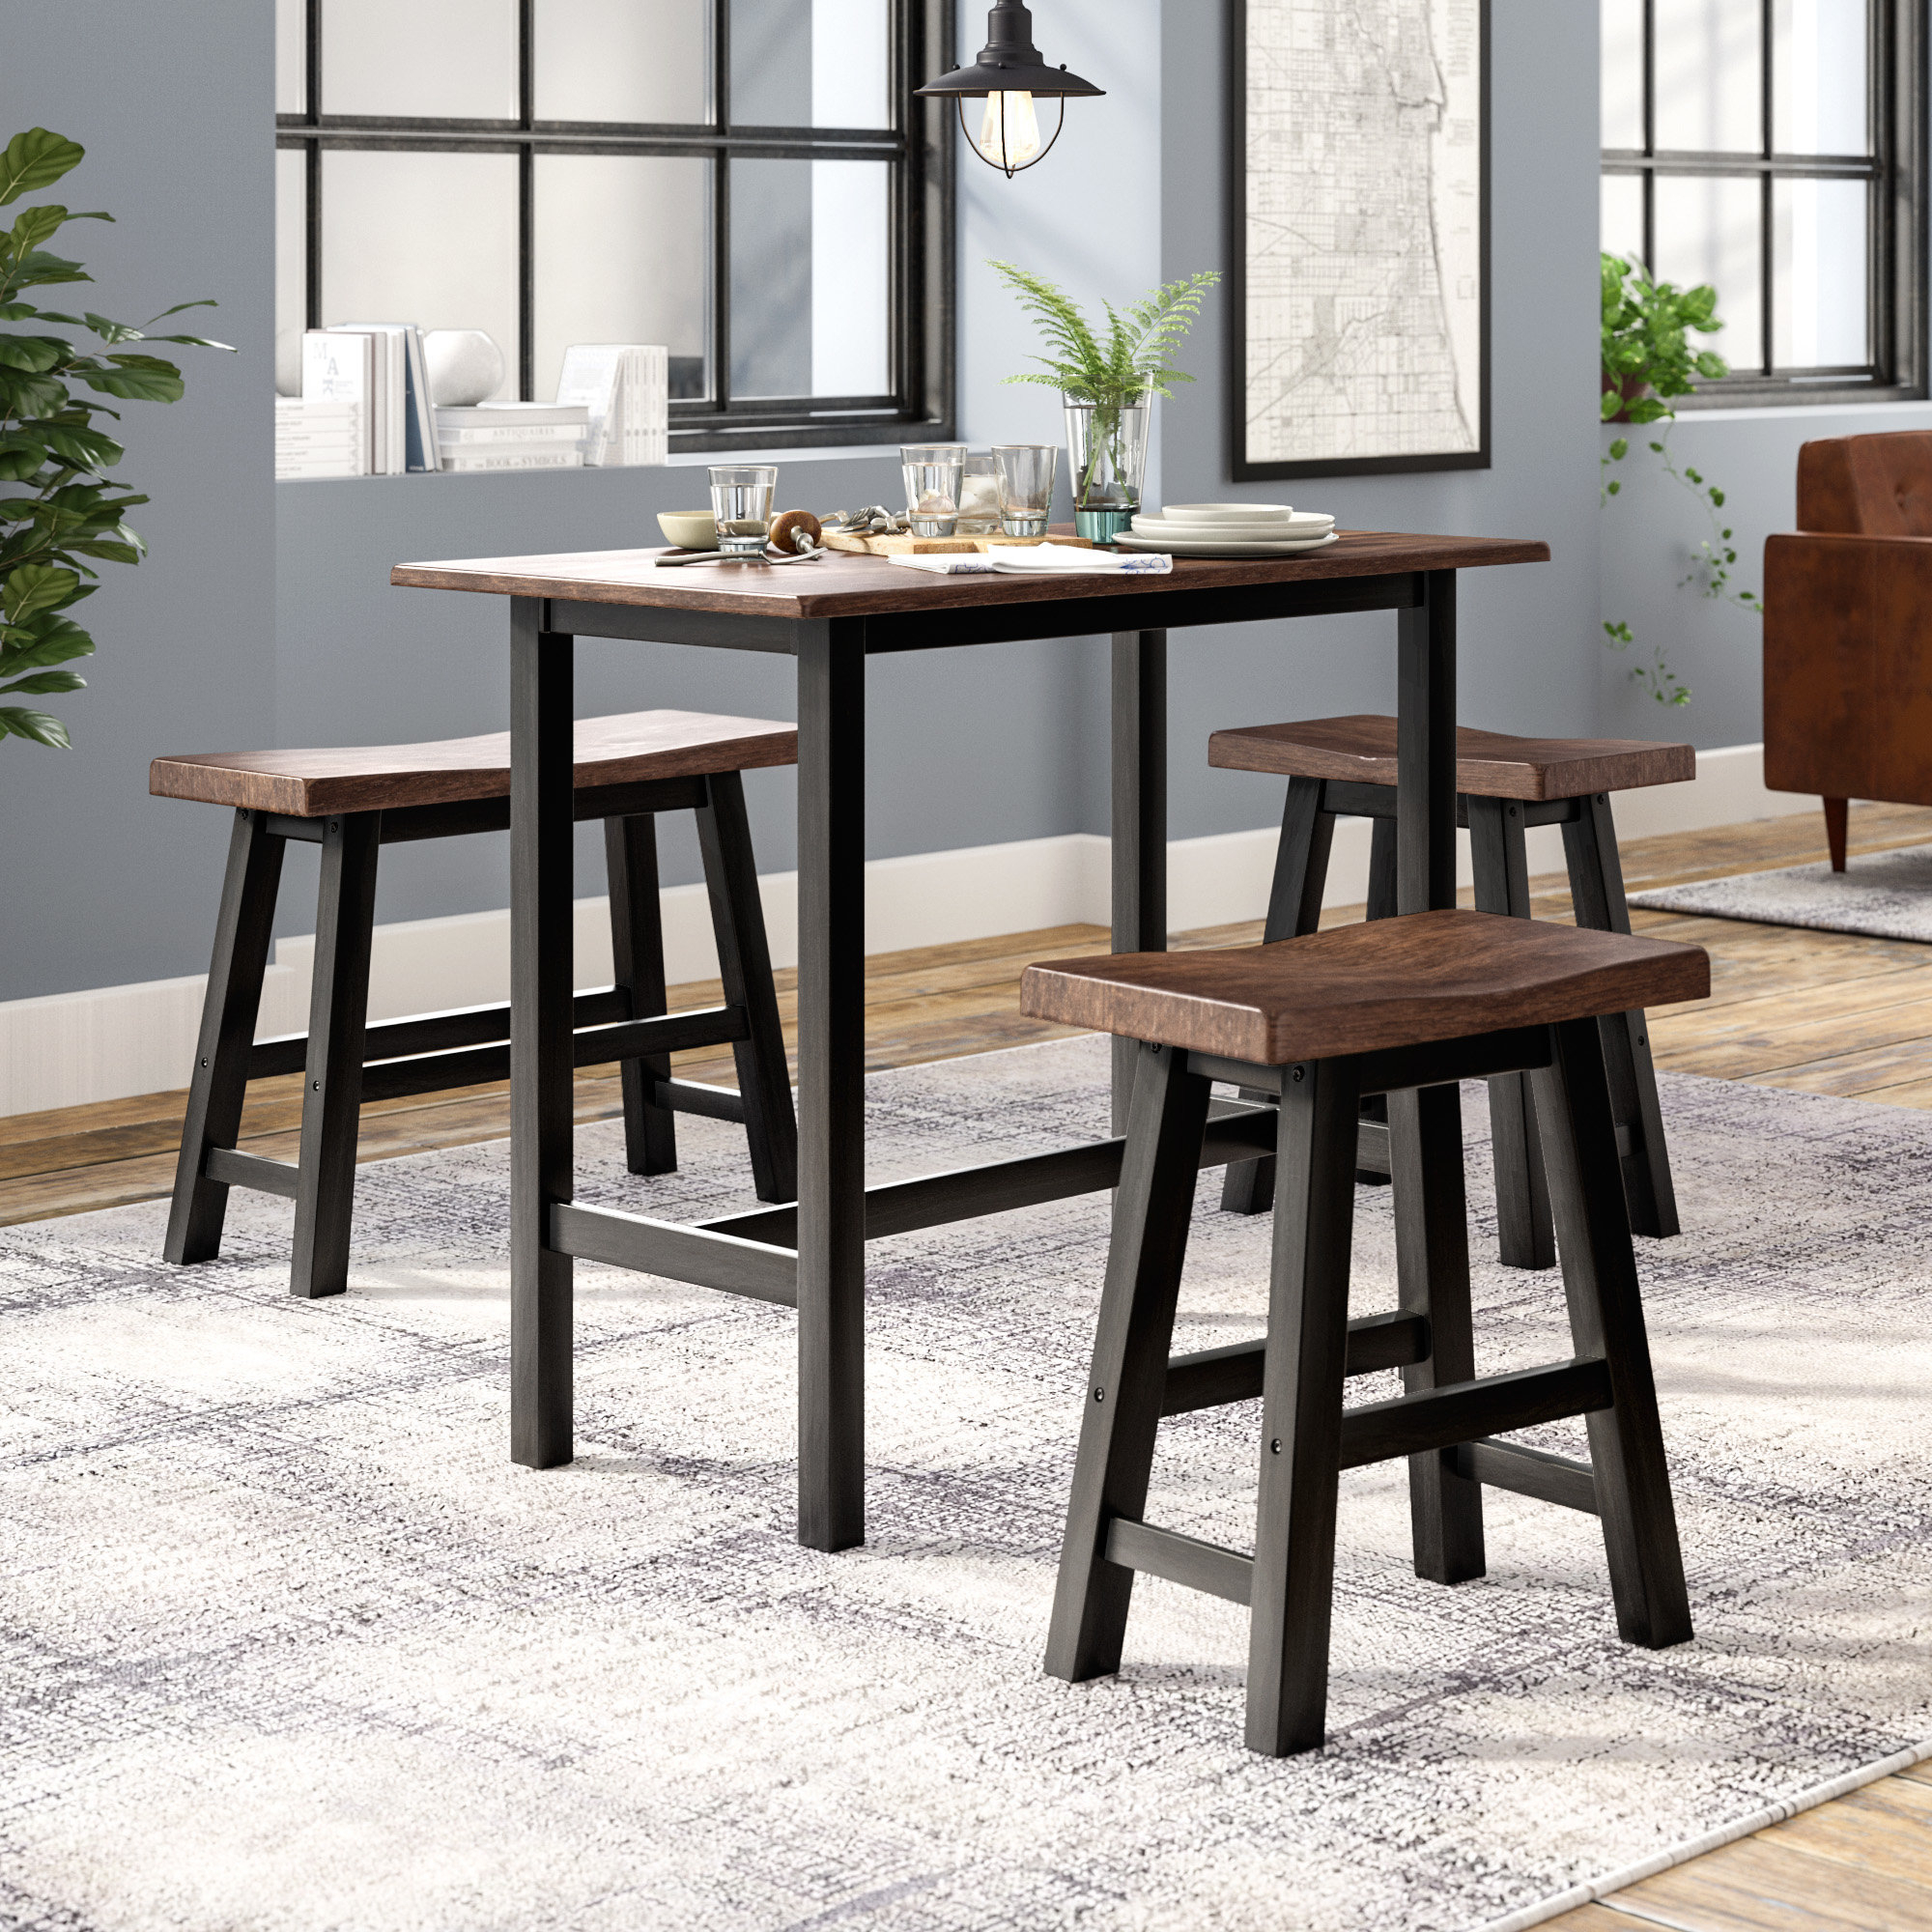 Chelsey 4 Piece Dining Set Throughout Best And Newest Weatherholt Dining Tables (View 8 of 20)